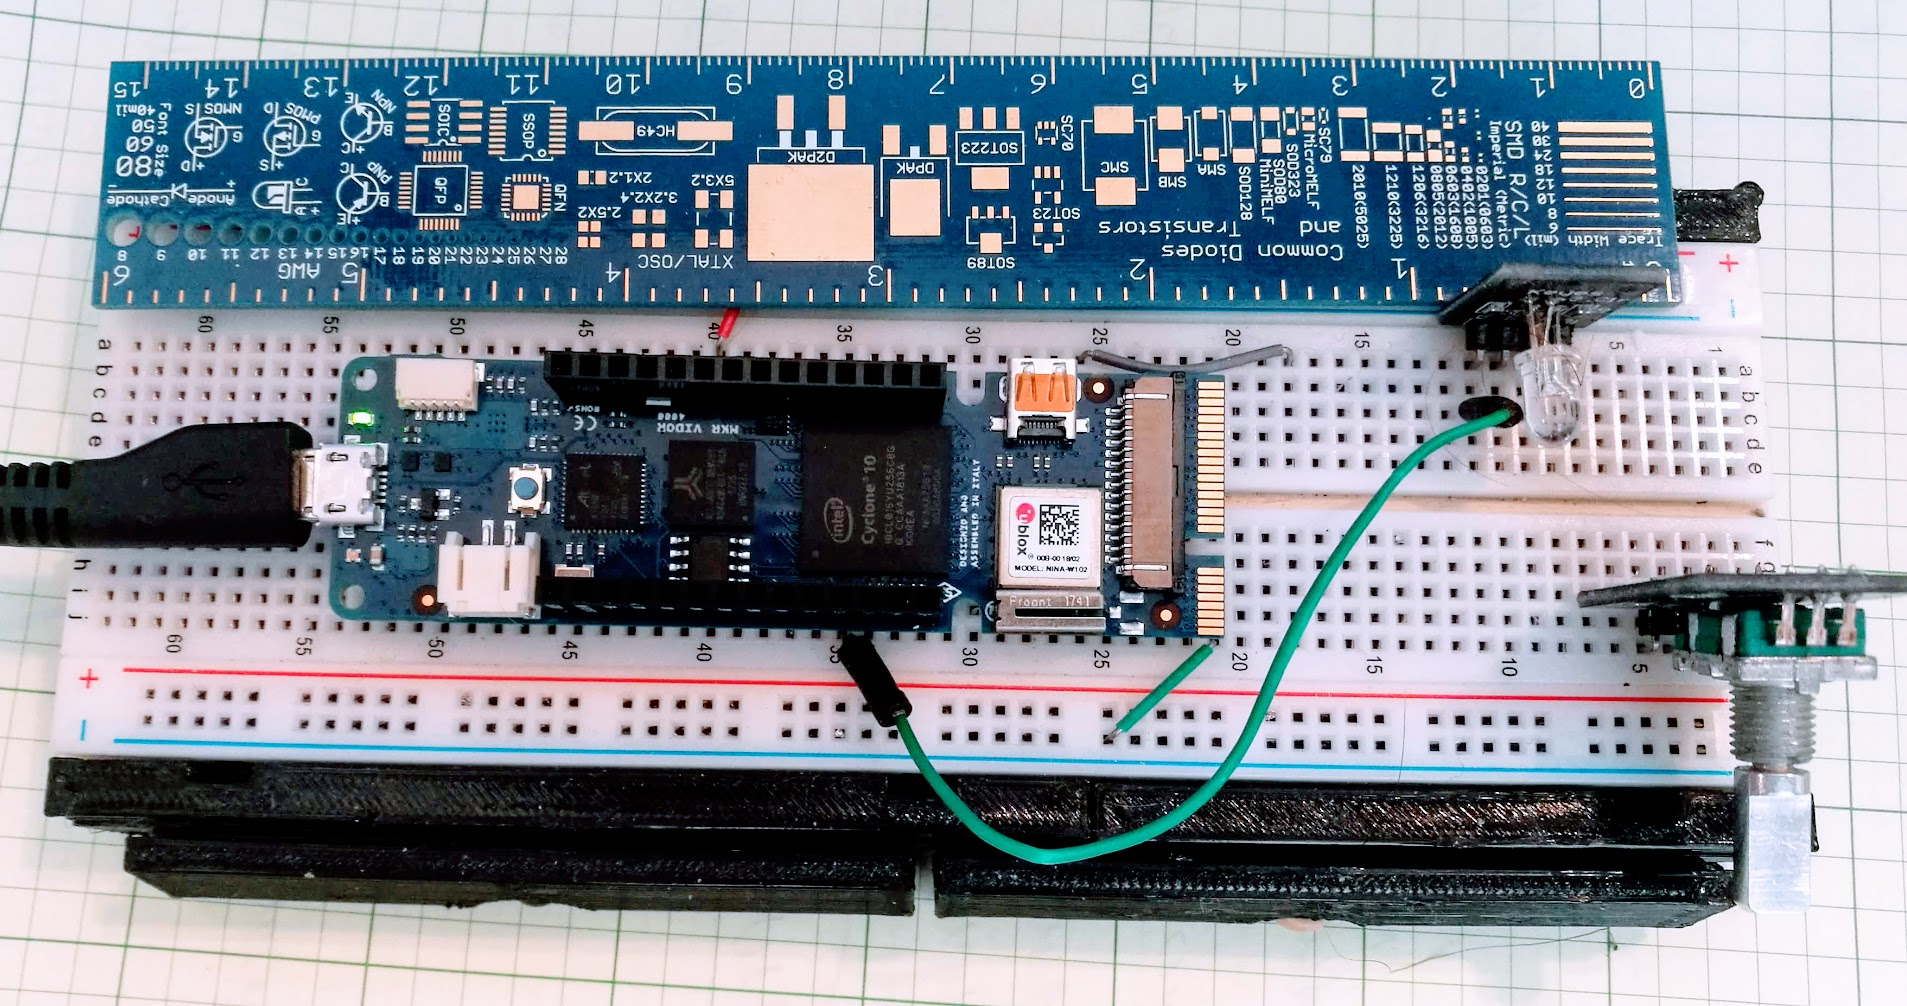 Hands-On With New Arduino FPGA Board: MKR Vidor 4000 | Hackaday